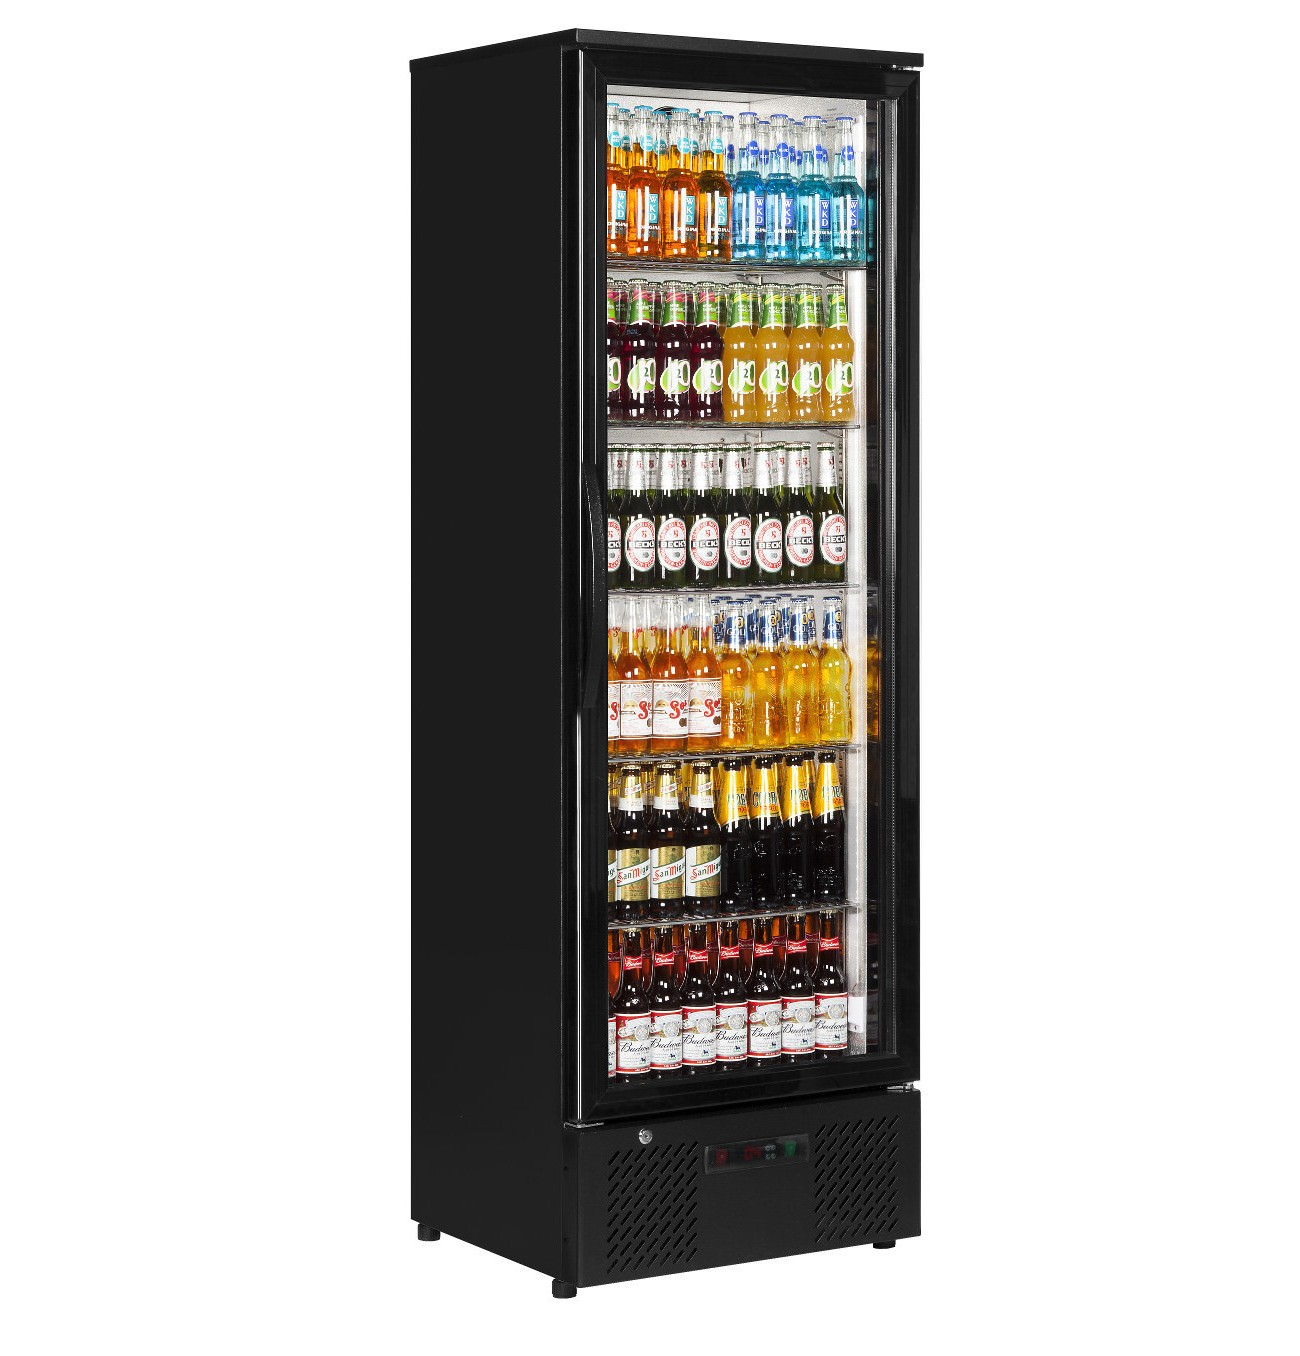 Rhino Moscow 293 Tall Single Door Bottle Cooler